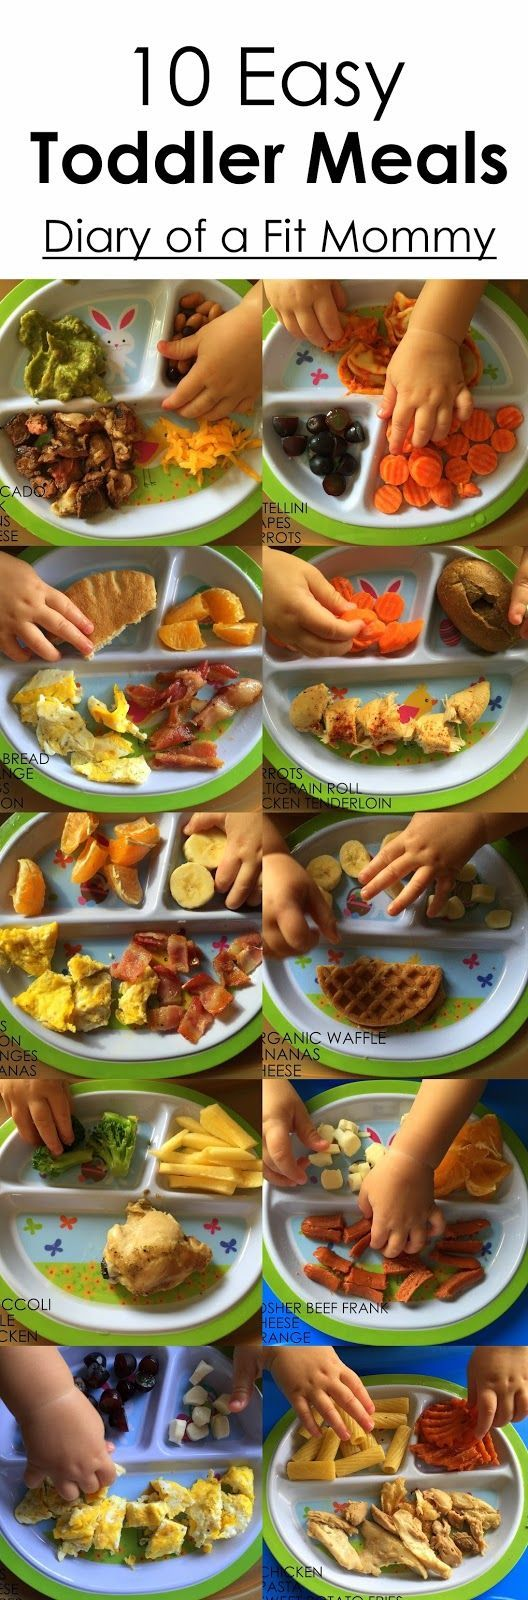 Diary of a Fit Mommy: 10 Easy Toddler Meals {Part 2}